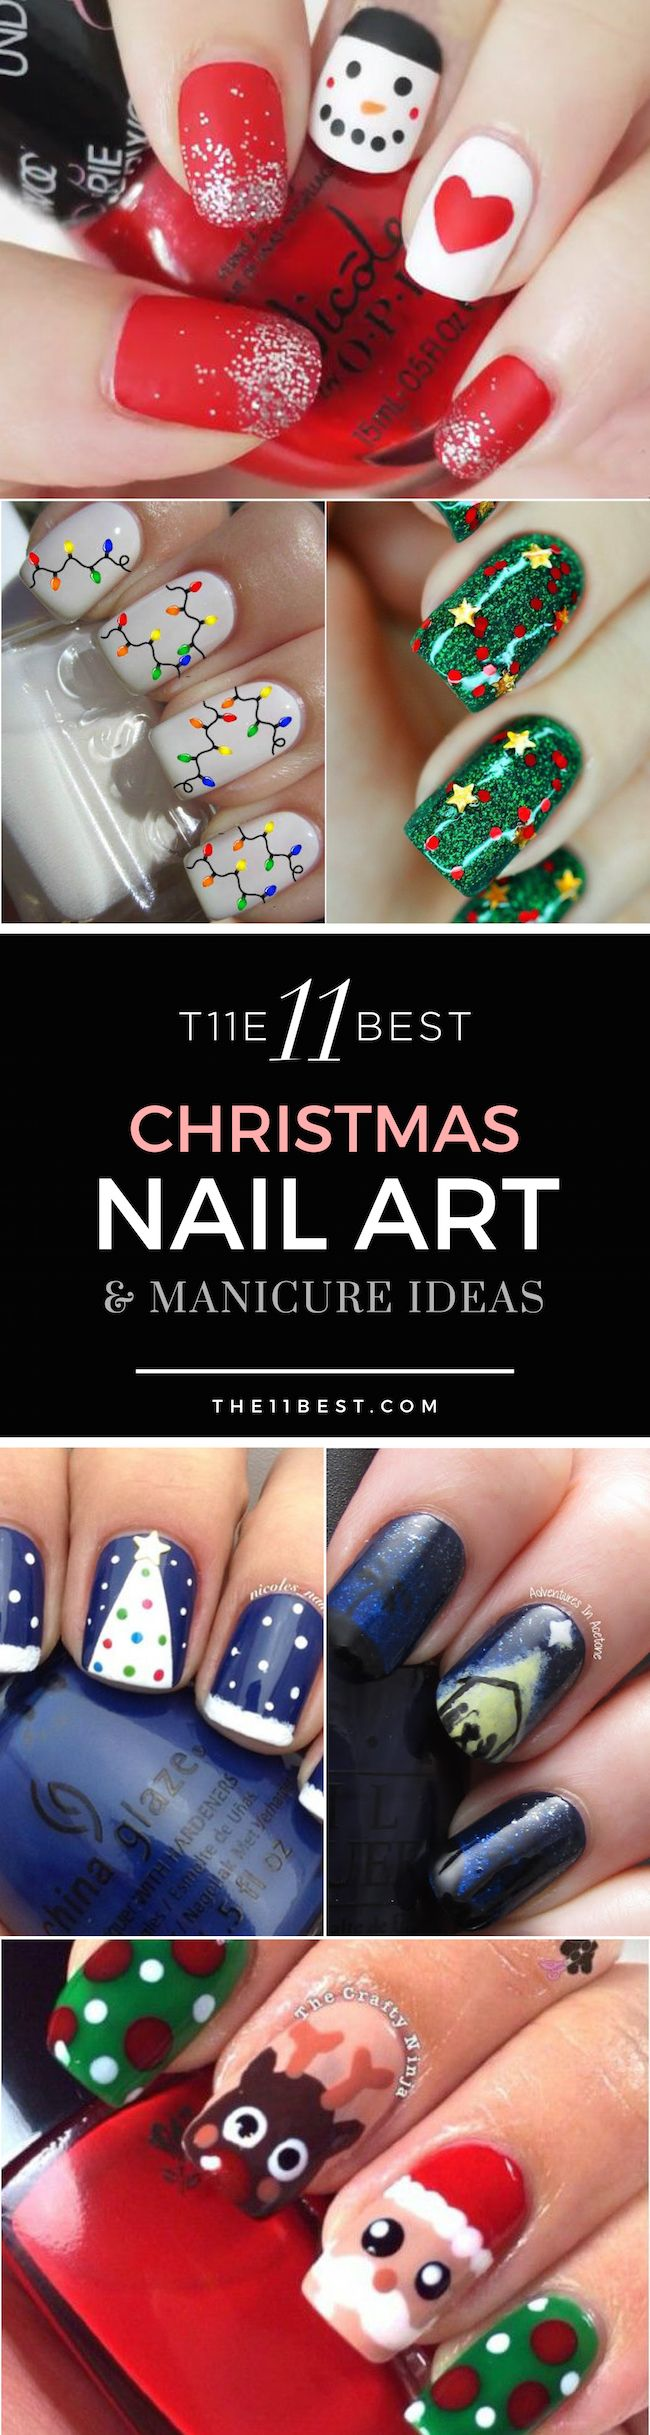 The 11 Best Christmas Nail Art Ideas